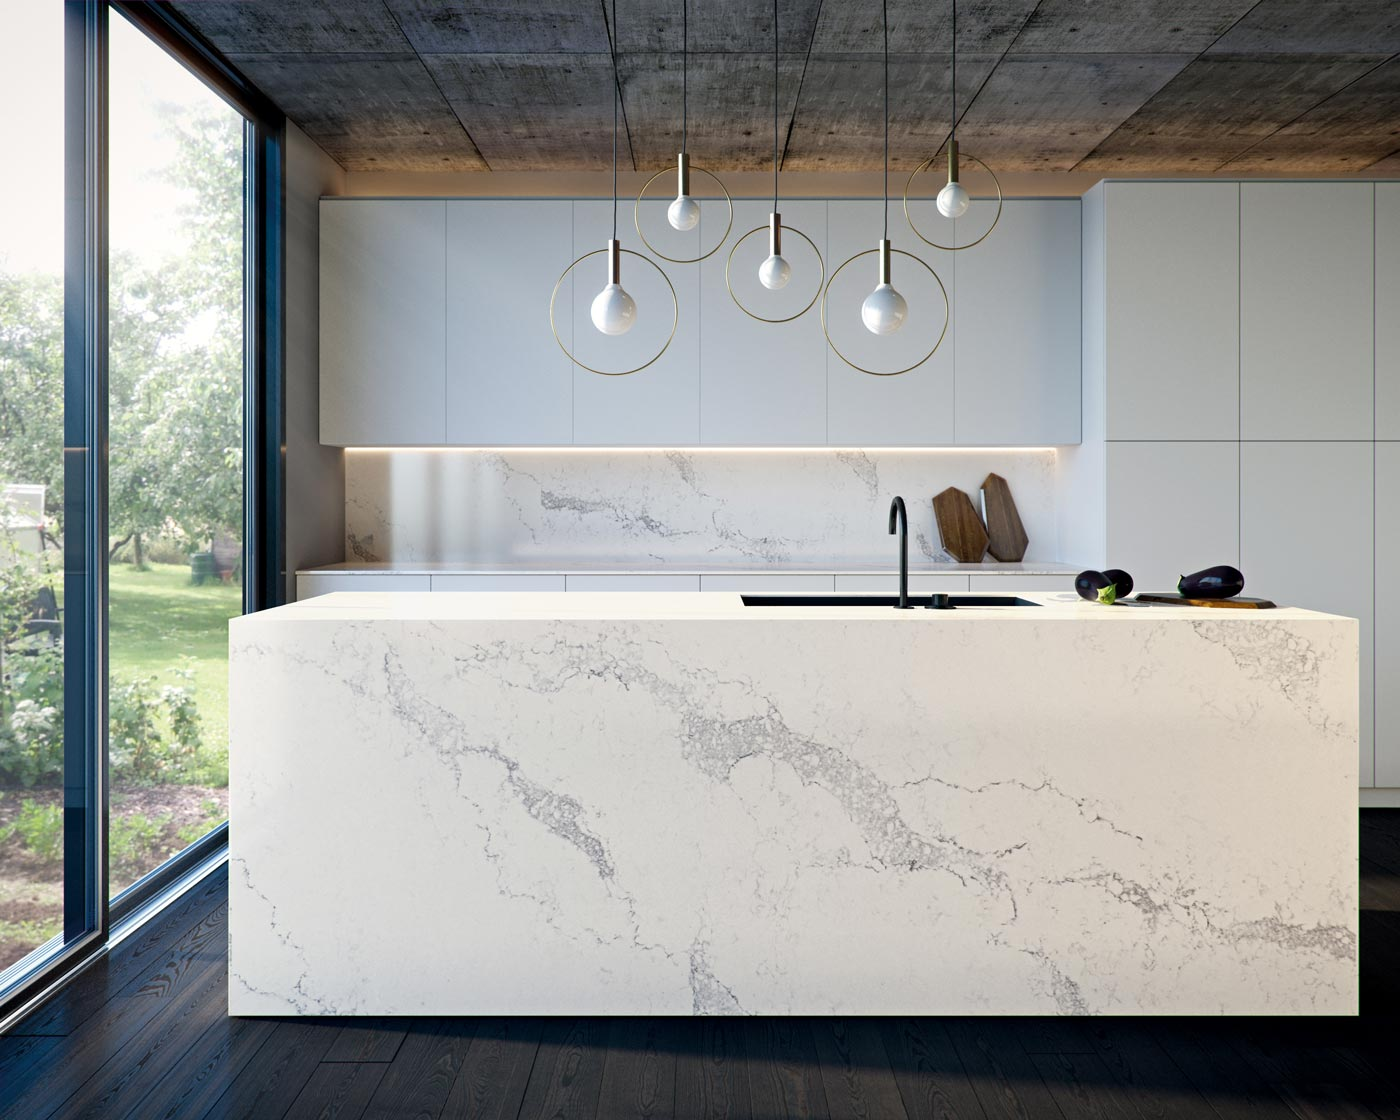 Caesarstone Benchtop Statuario Maximus Island Bench In Modern Kitchen Design